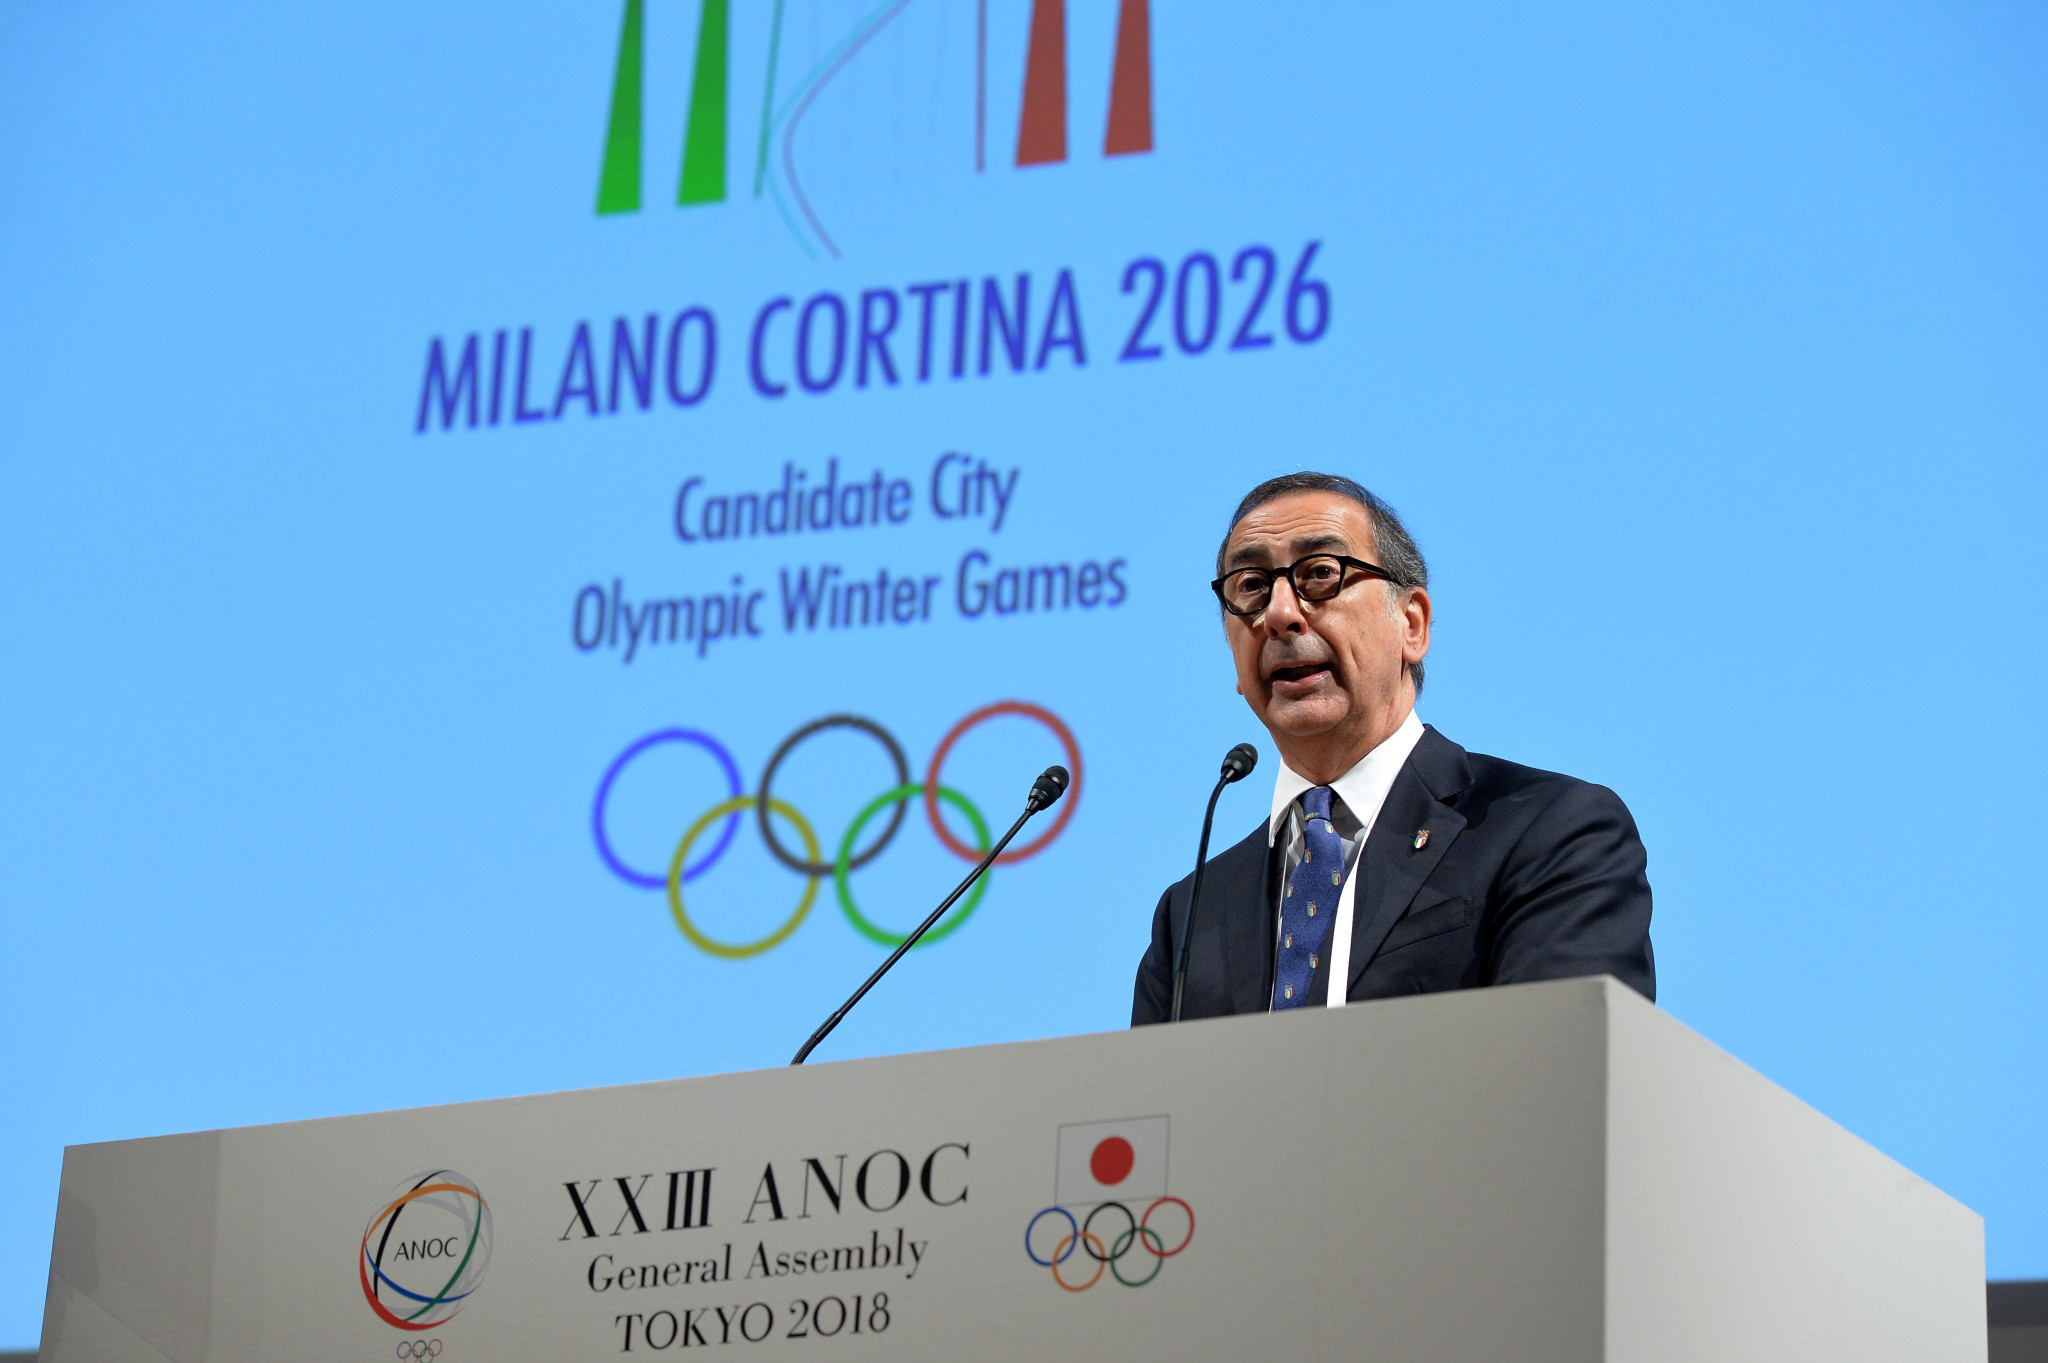 Milan Mayor Giuseppe Sala claimed the Italian bid for the 2026 Winter Olympic and Paralympics in tandem with Cortina d'Ampezzo would have a positive impact for local communities ©Getty Images